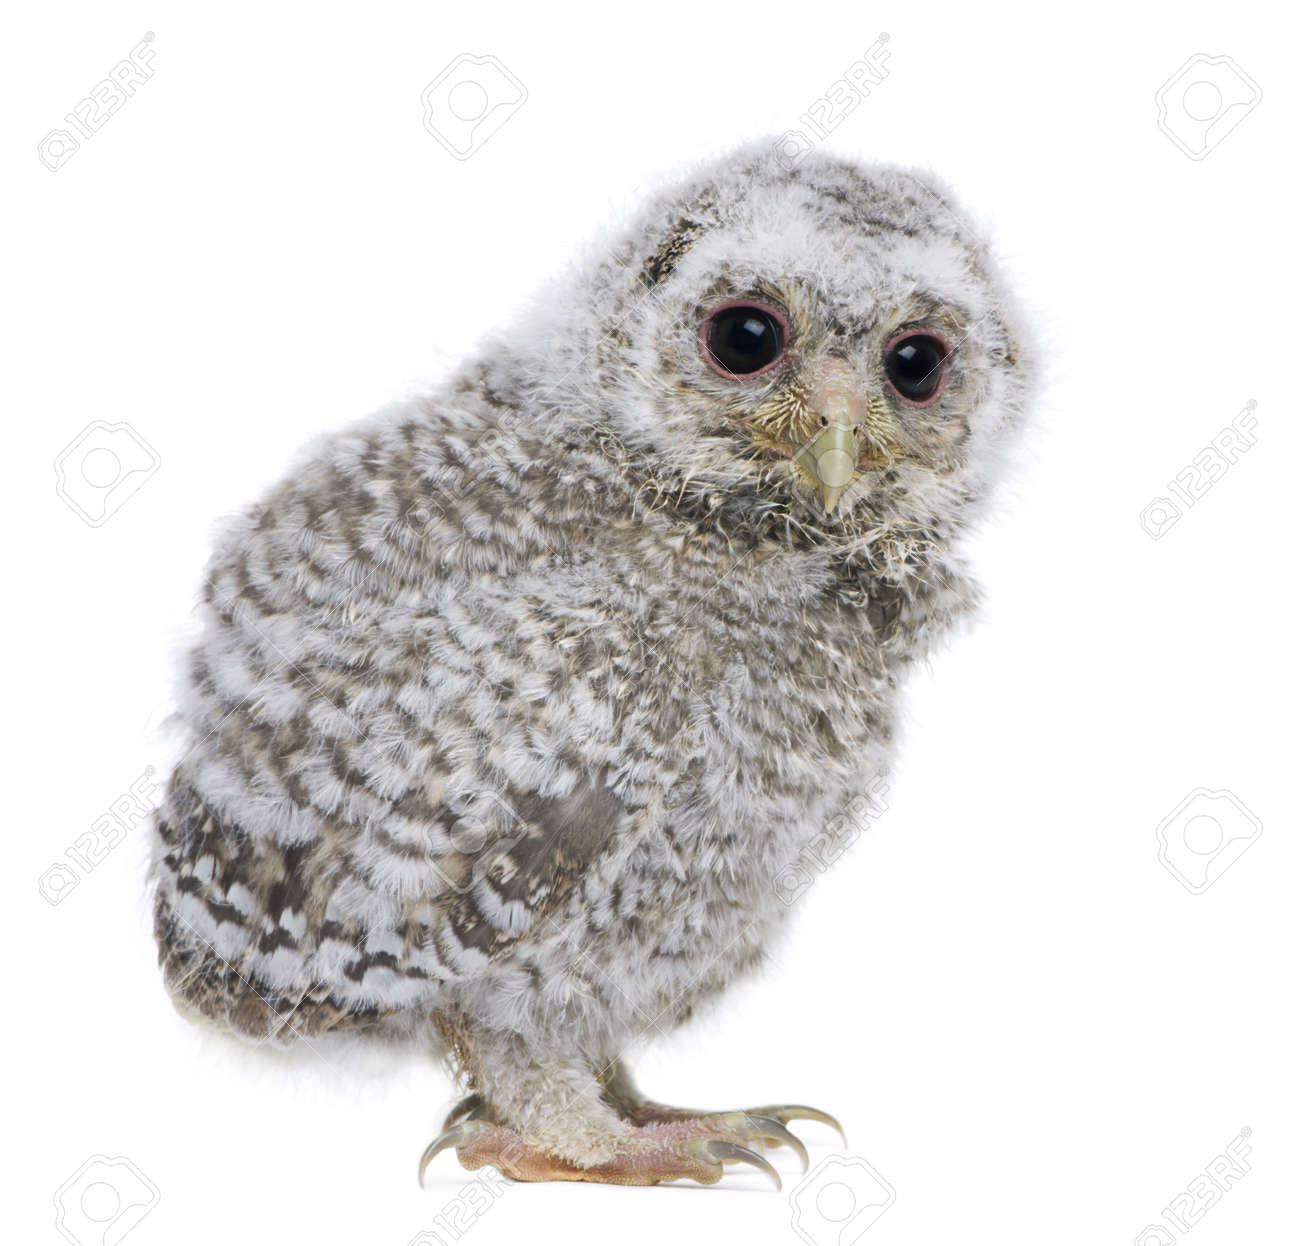 side view of a owlet - Athene noctua (4 weeks old) in front of a white background Stock Photo - 4934586